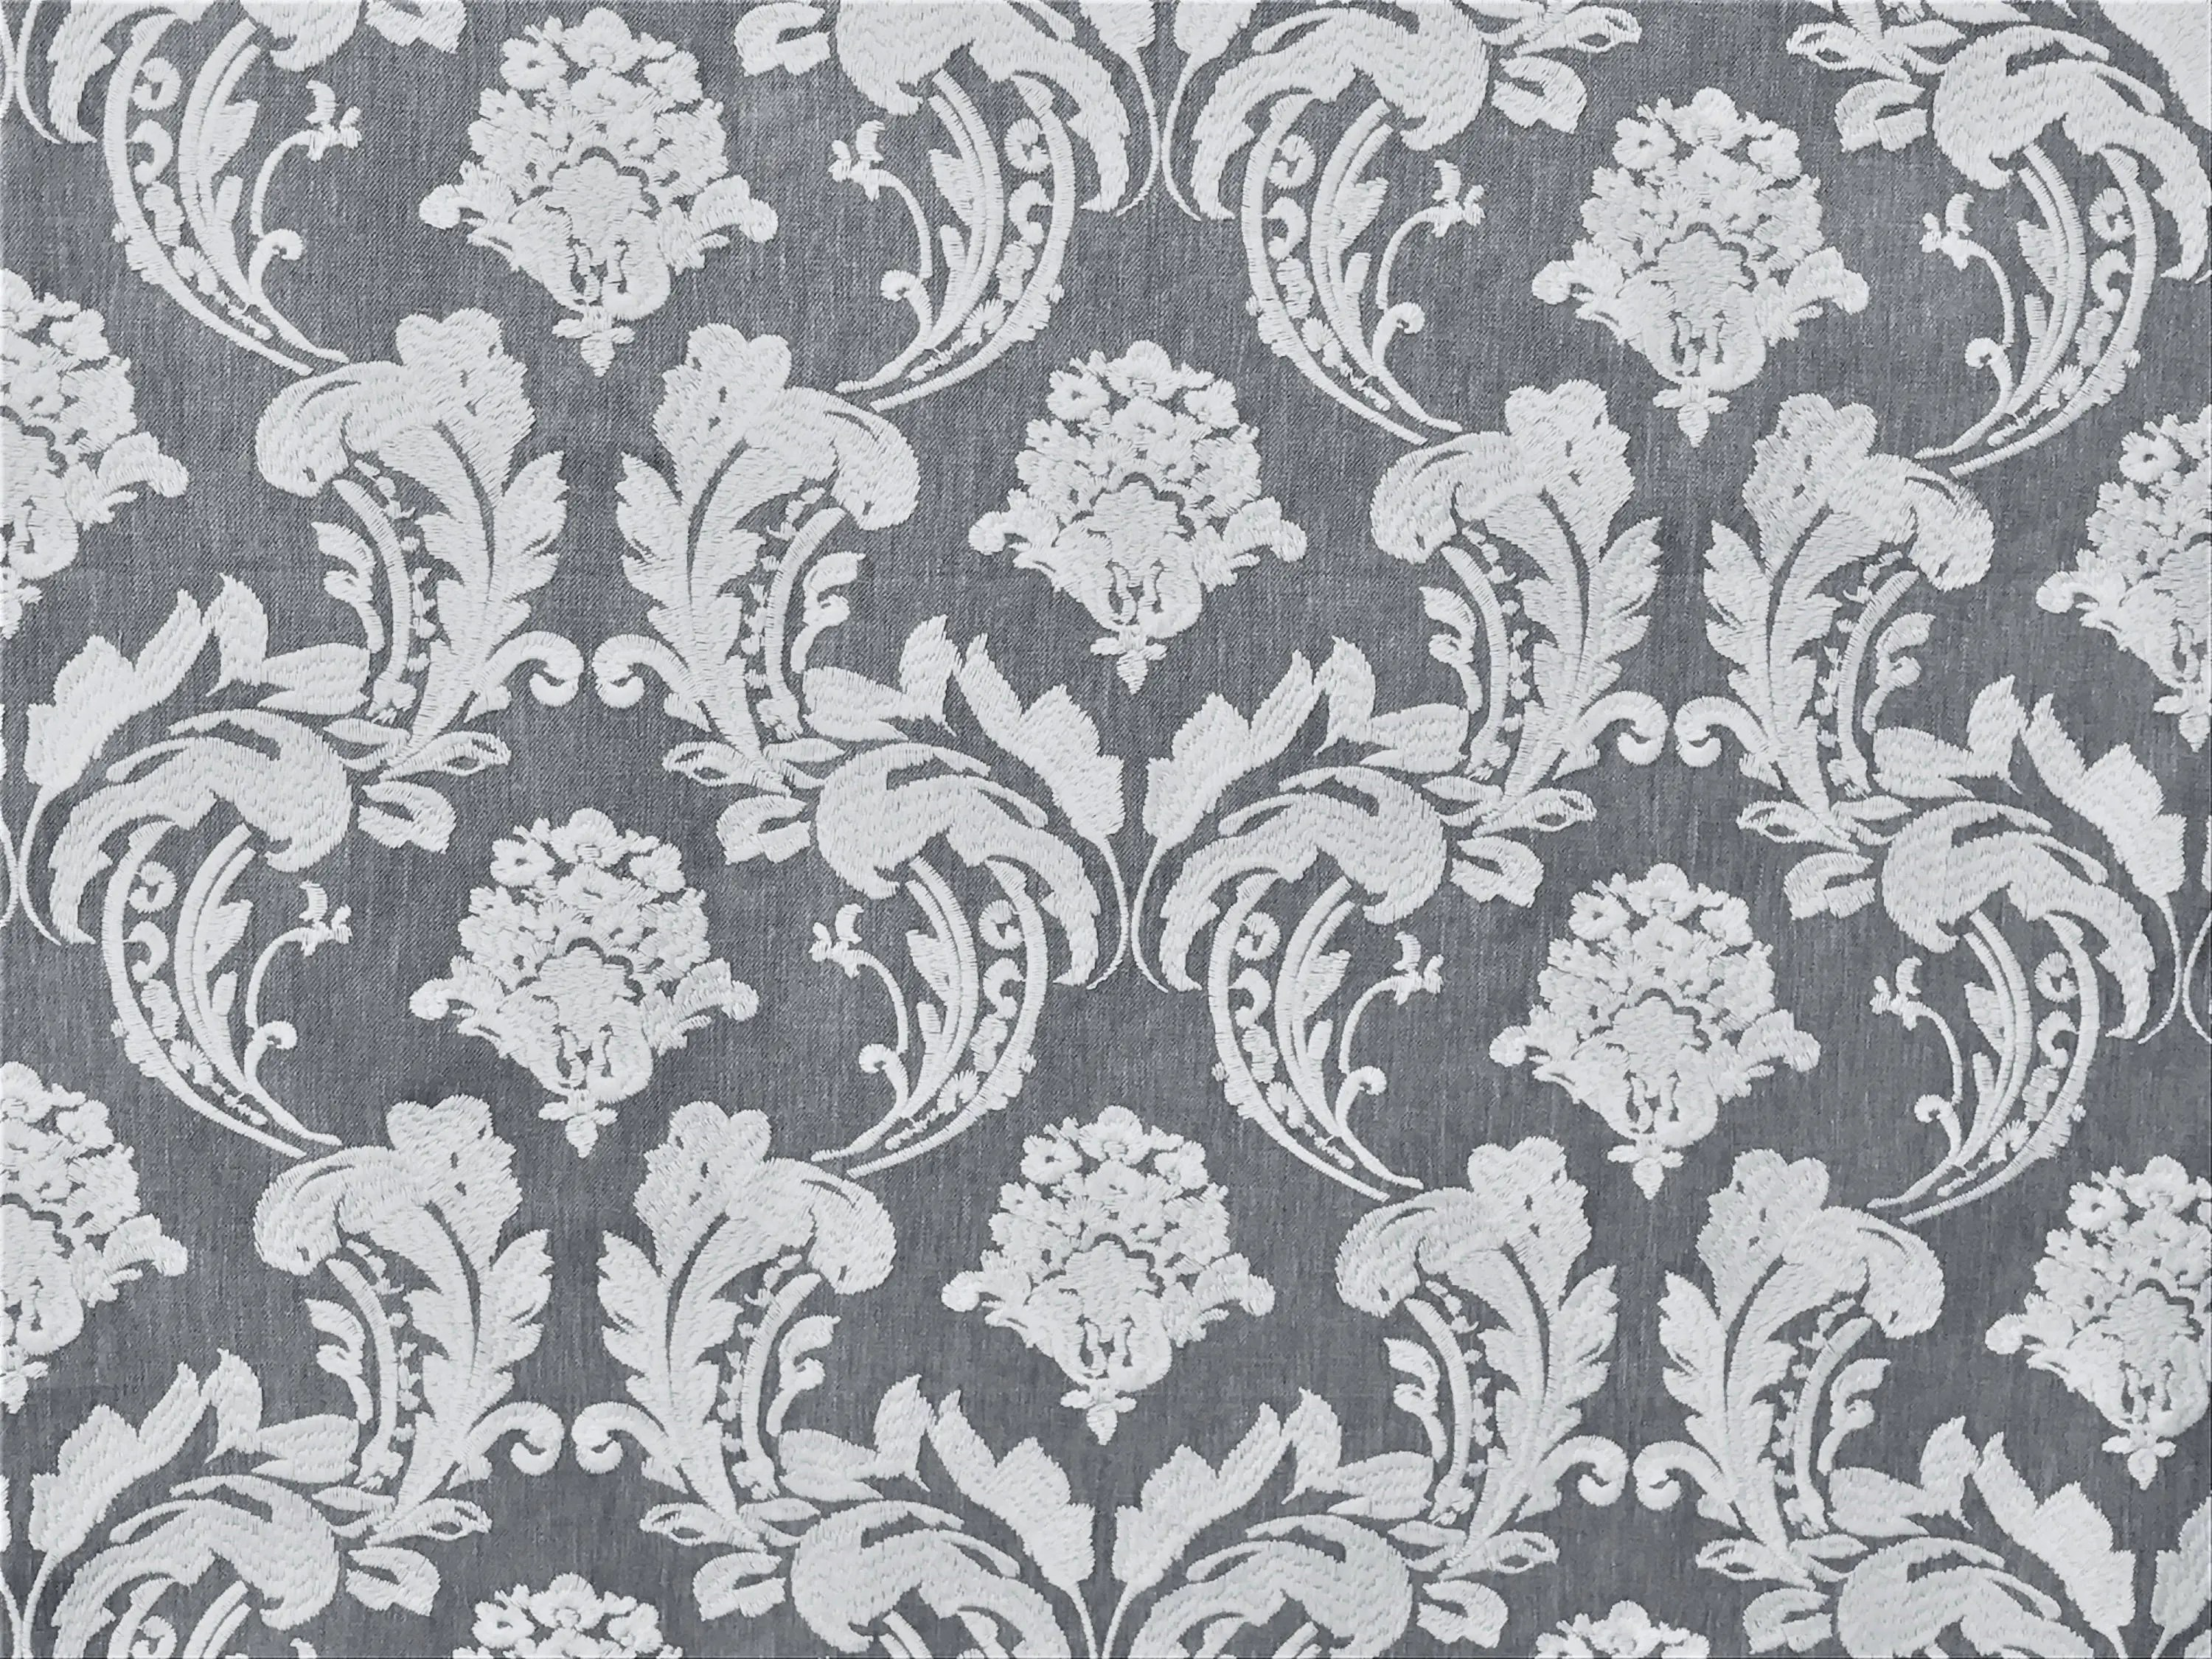 Curtain Fabric Wholesale Gray White Embroidery Damask Curtain Fabric By The Yard Upholstery Fabric Wholesale Drapery Fabric Window Treatment Sofa Fabric For Sale